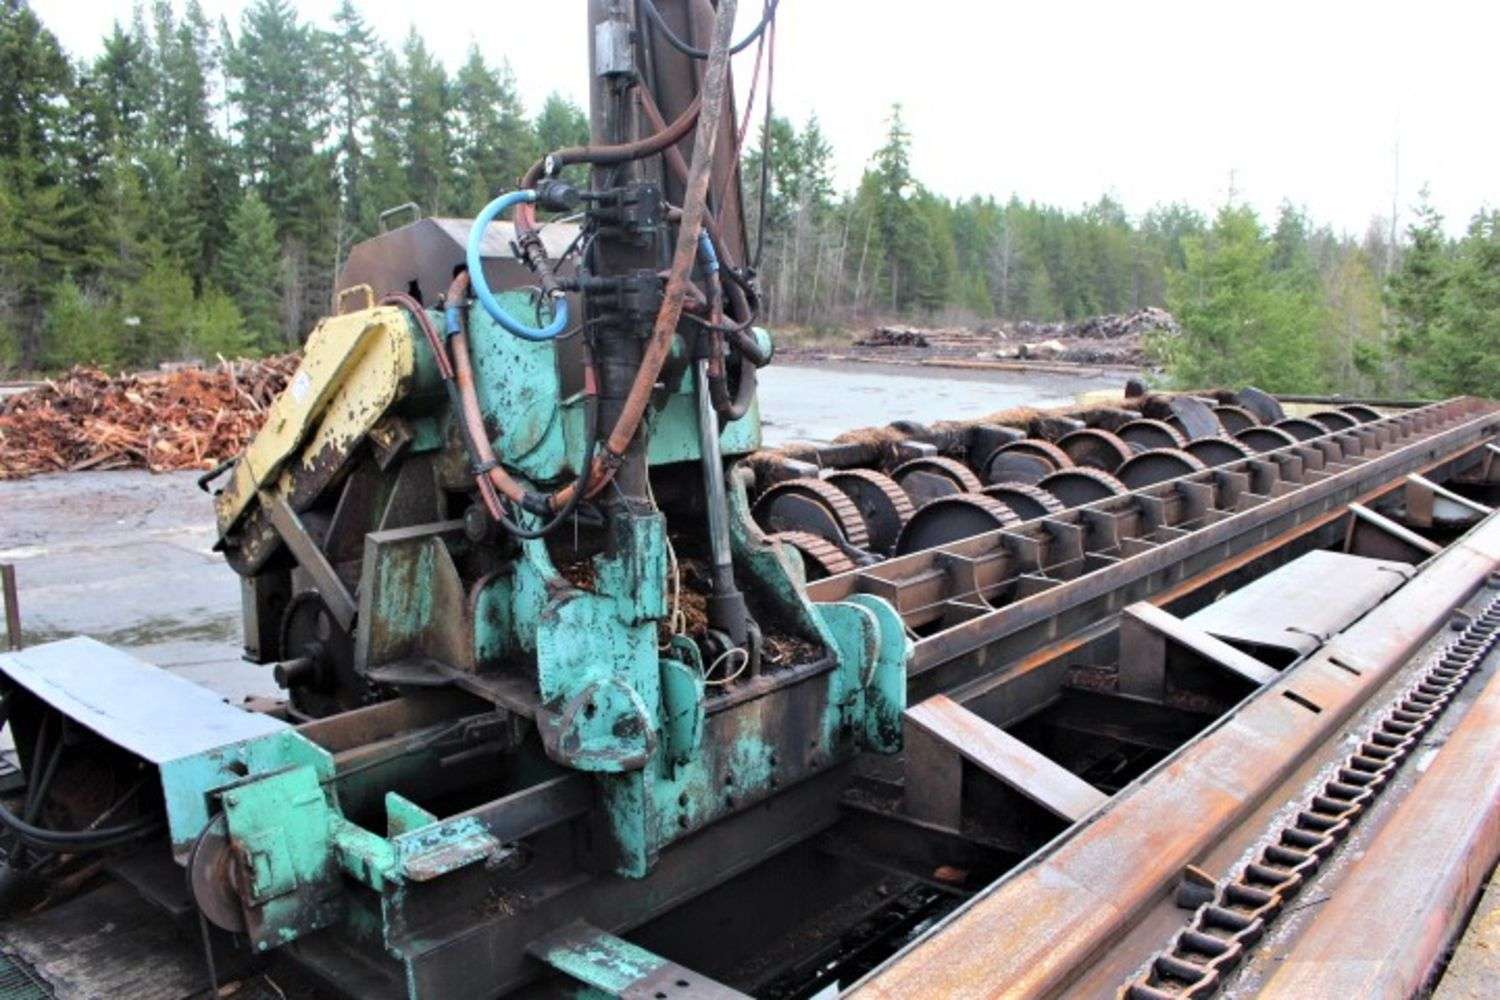 MAJOR SAWMILL AND MOBILE EQUIPMENT AUCTION - ERRINGTON CEDAR PRODUCTS LTD.